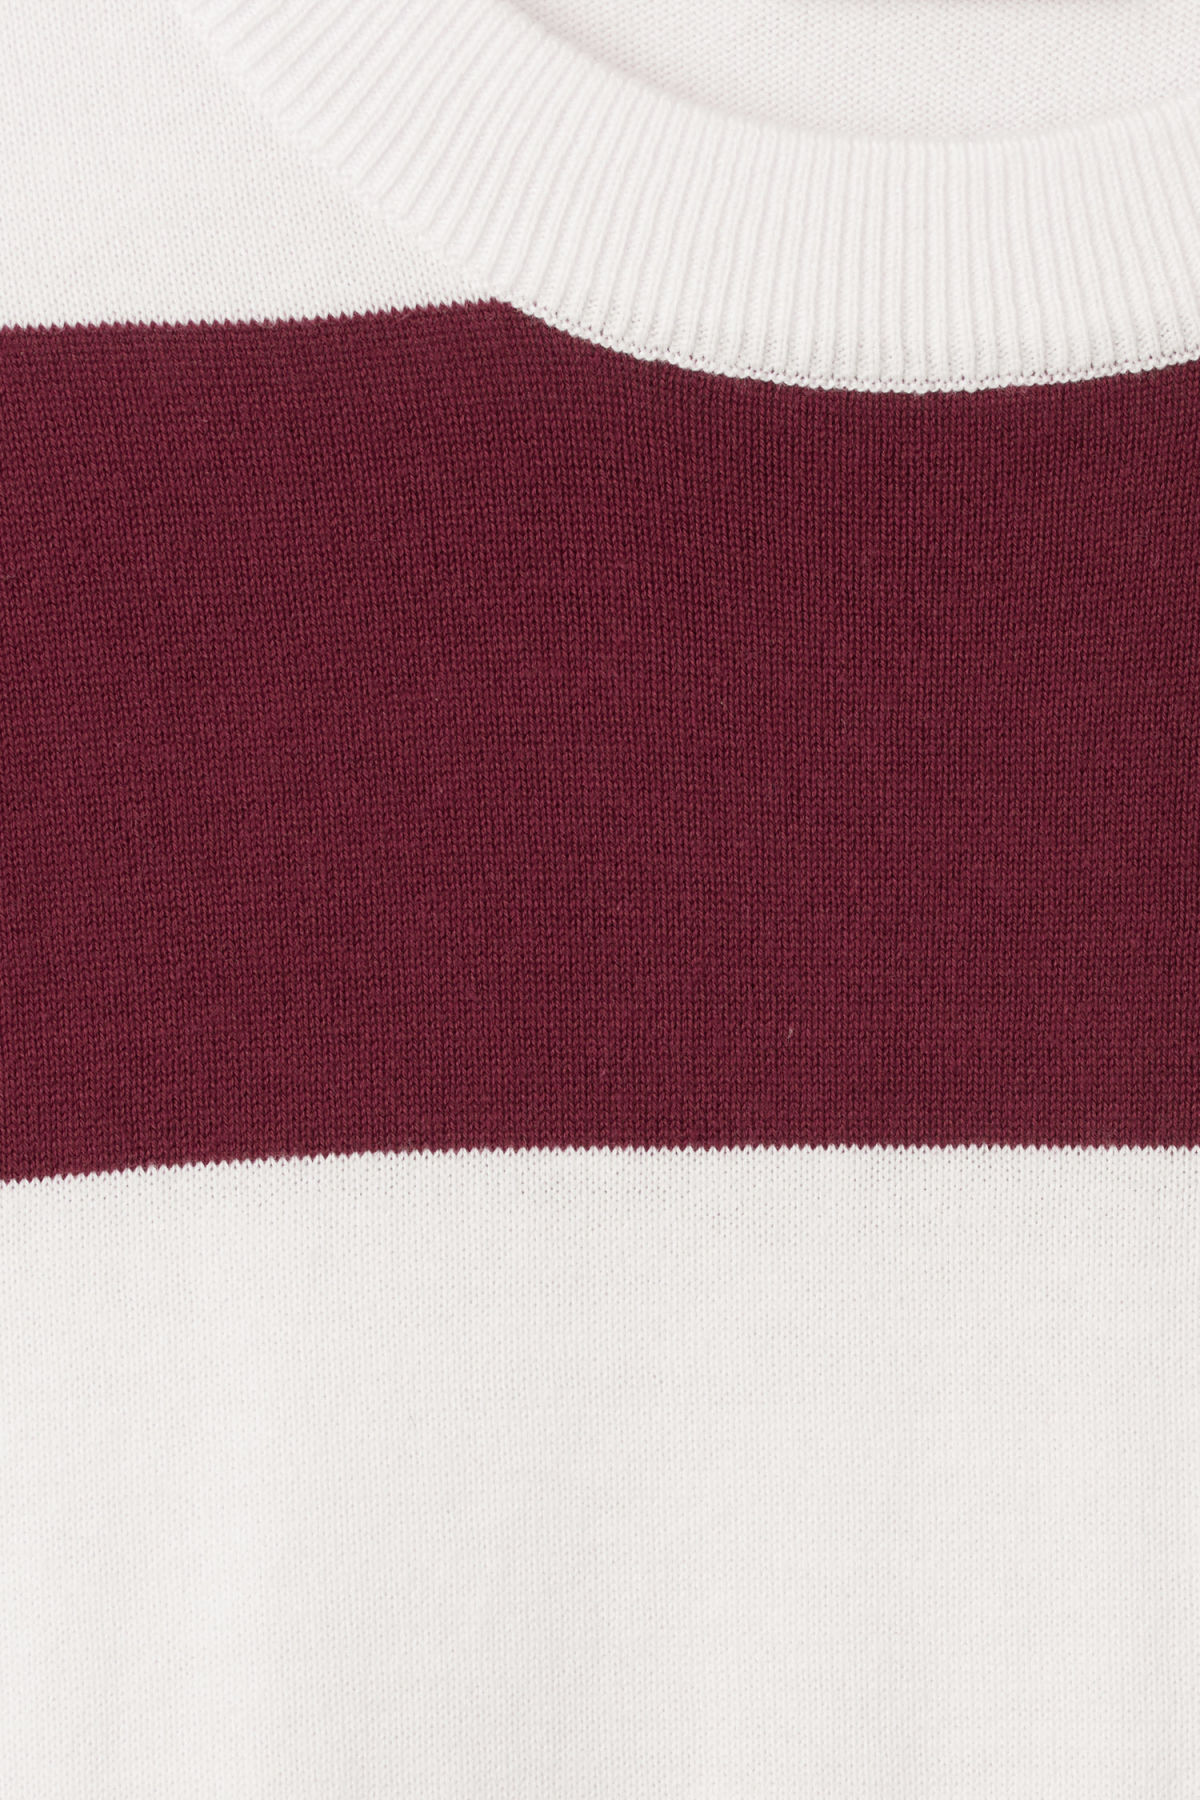 Detailed image of Weekday pyramid sweater in red